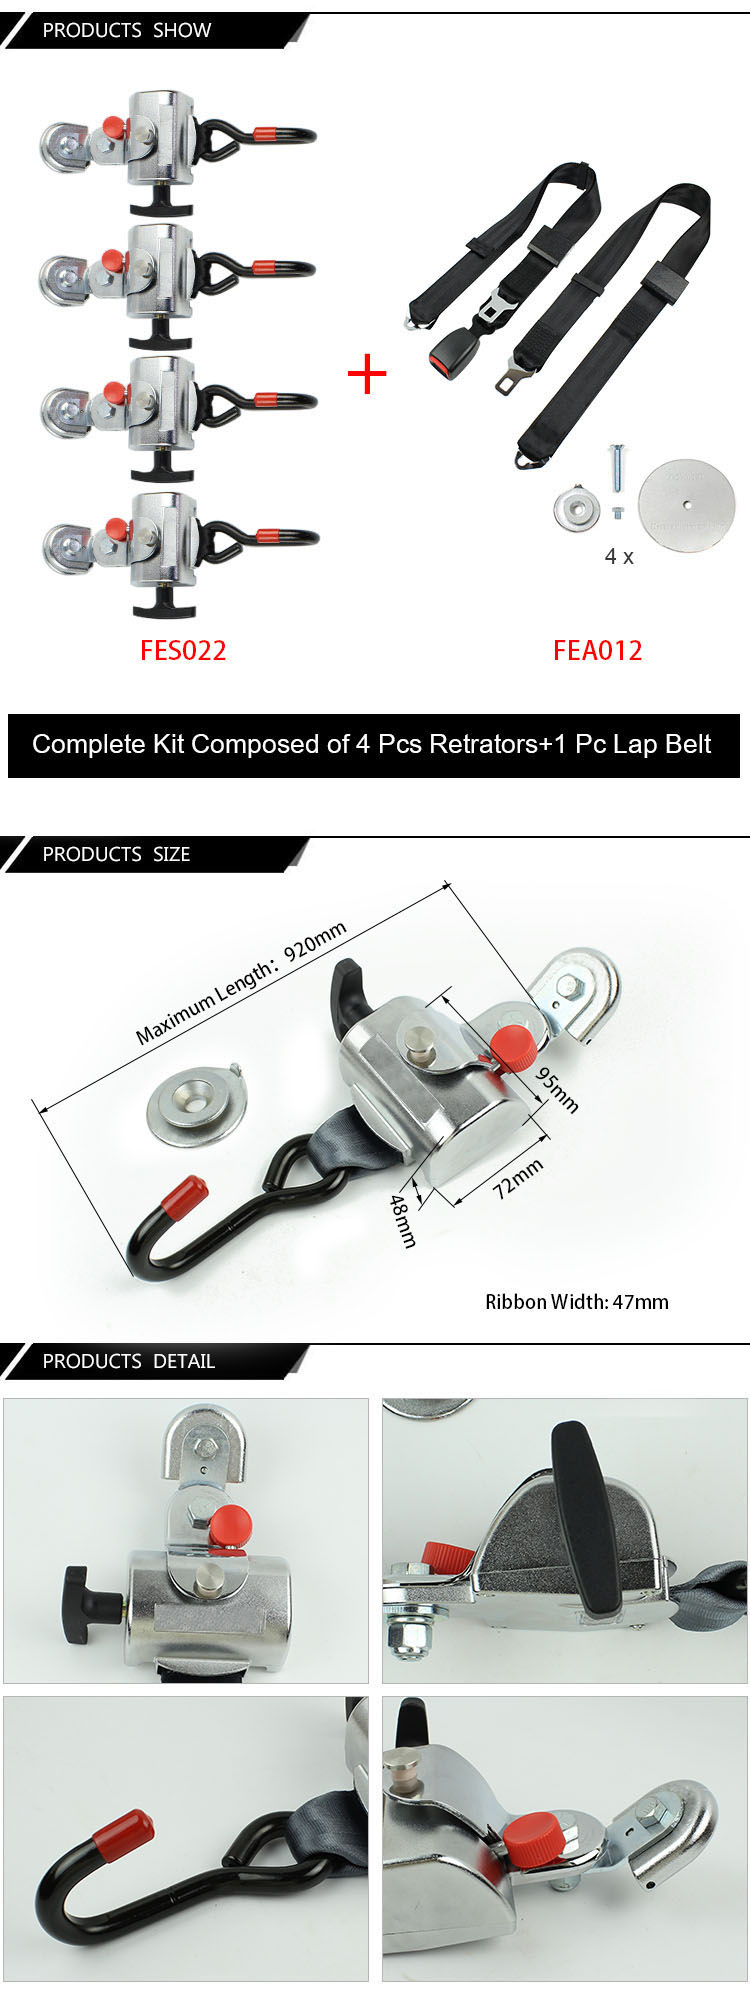 FES032 Standard Wheelchair Retractable Tie Down System